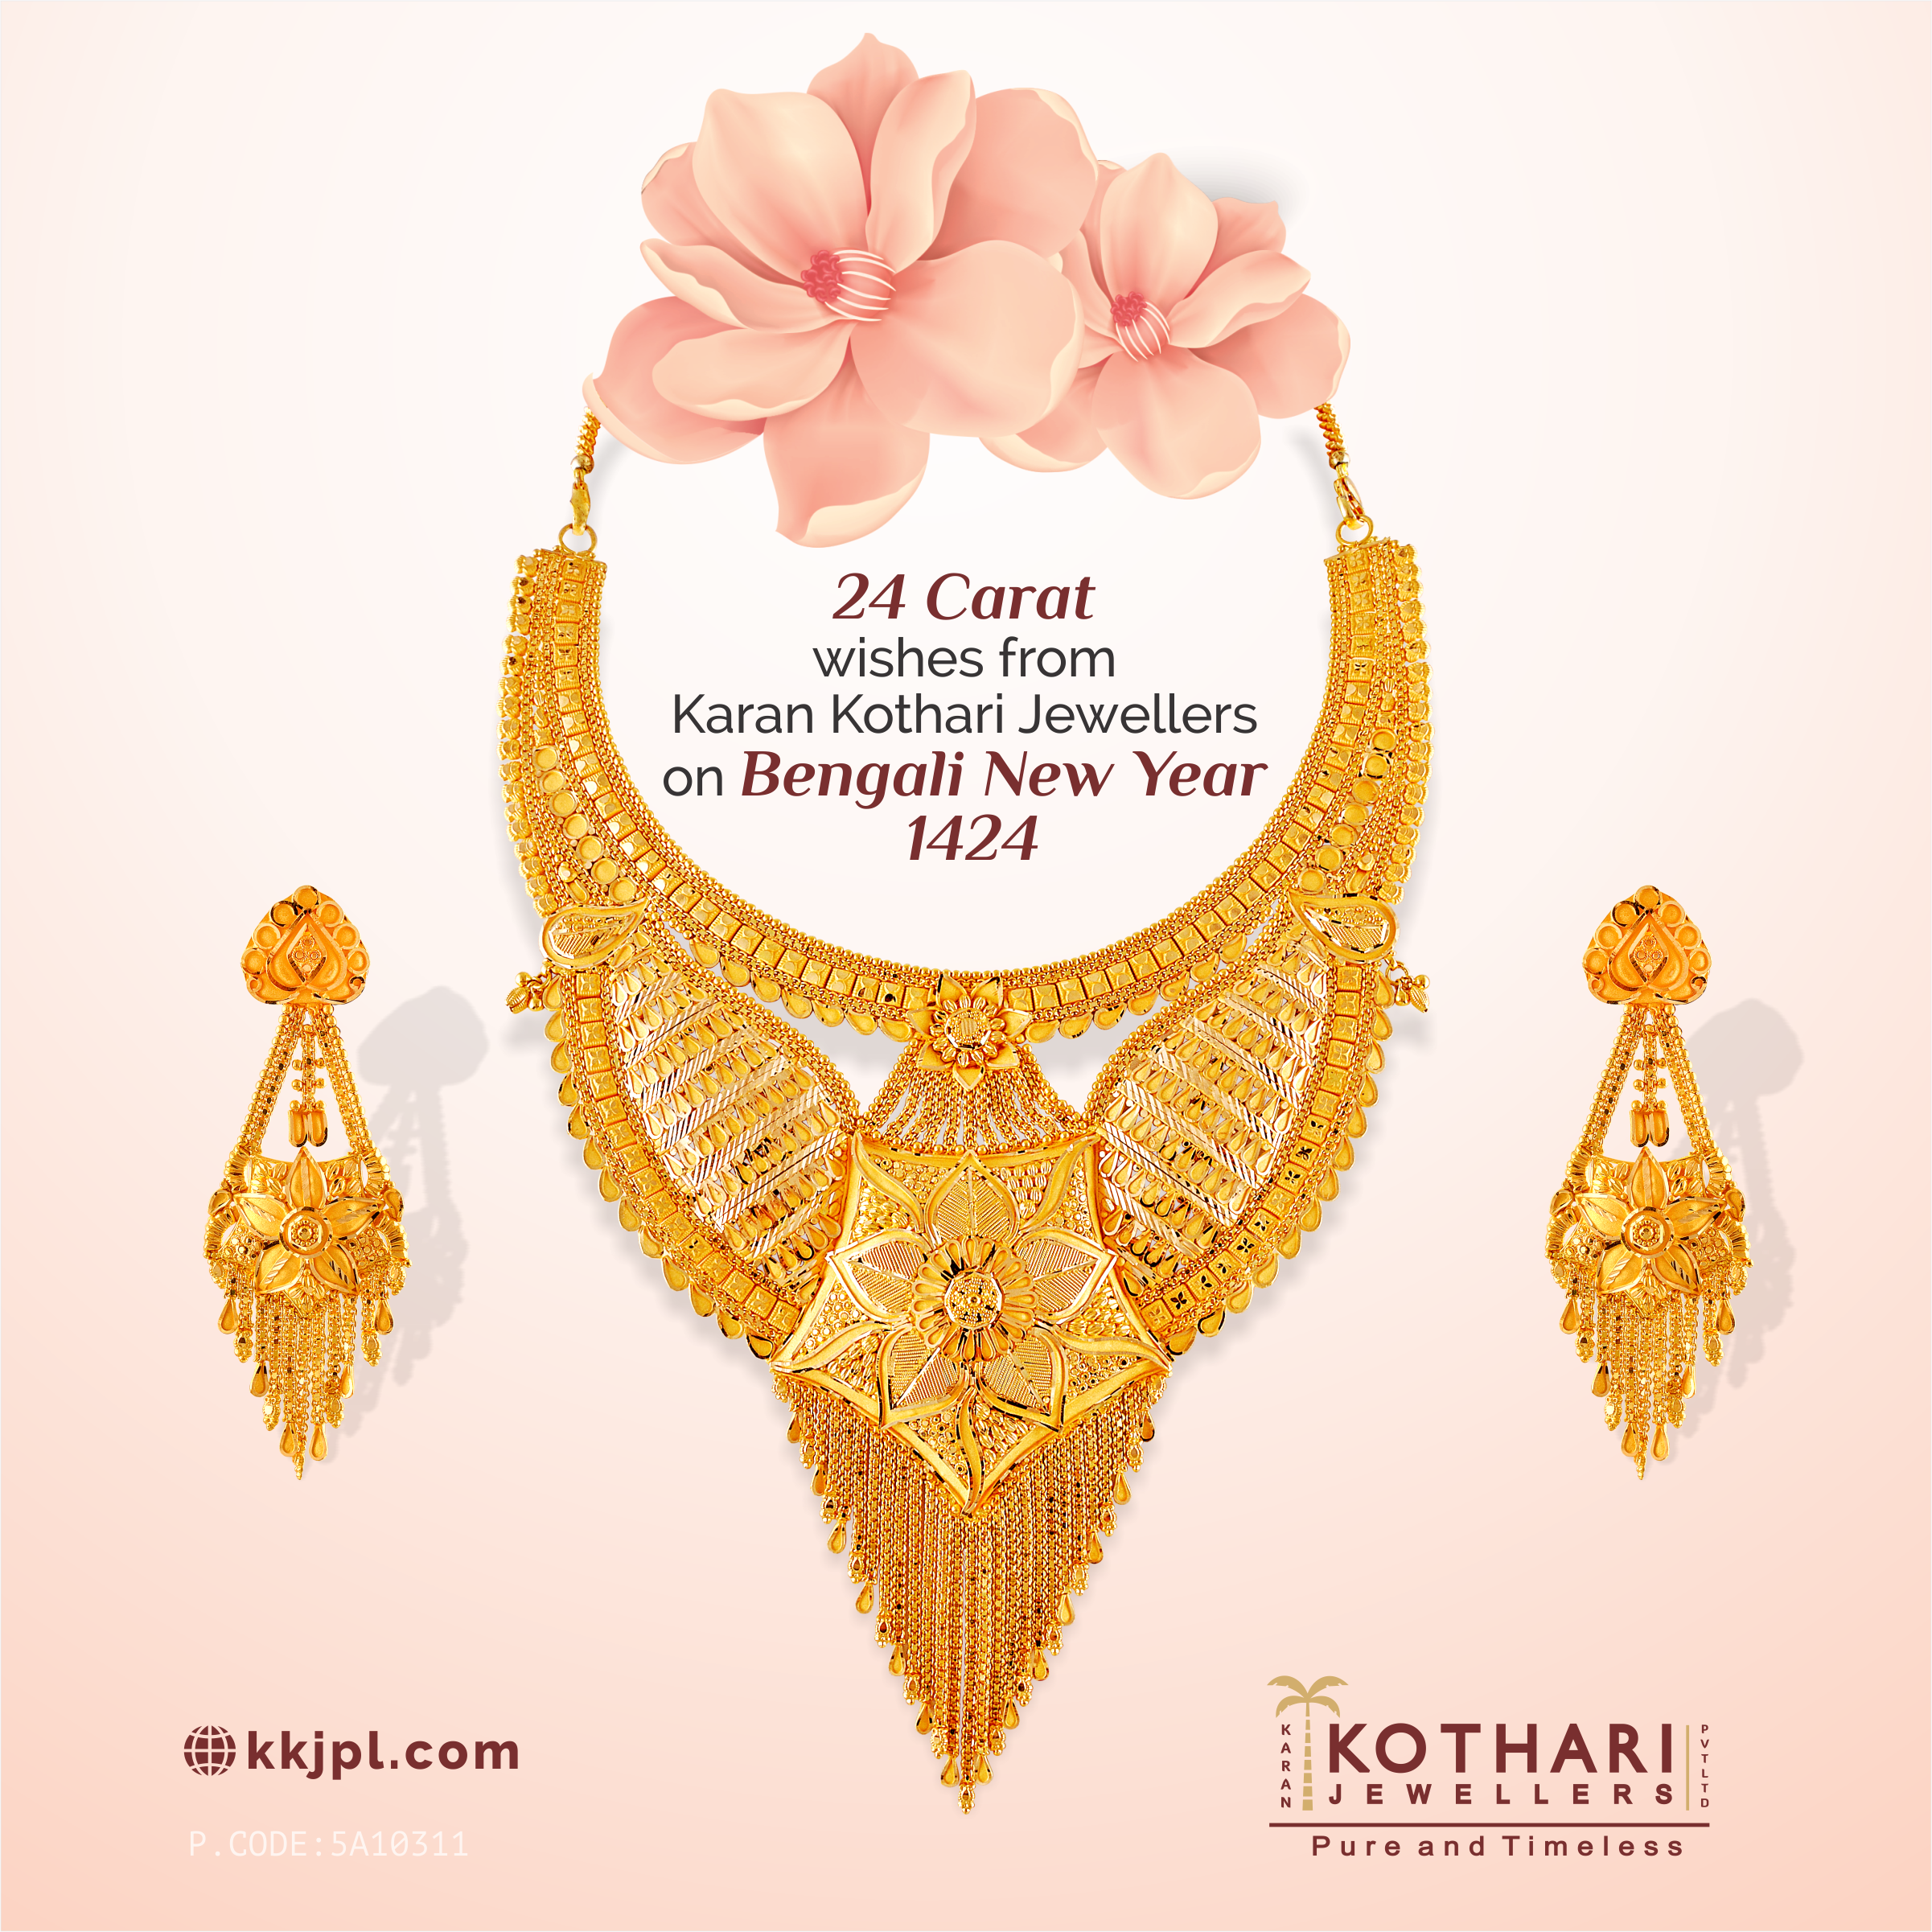 24 Carat wishes from KKJPL on Bengali New Year 14 24 #necklace ...